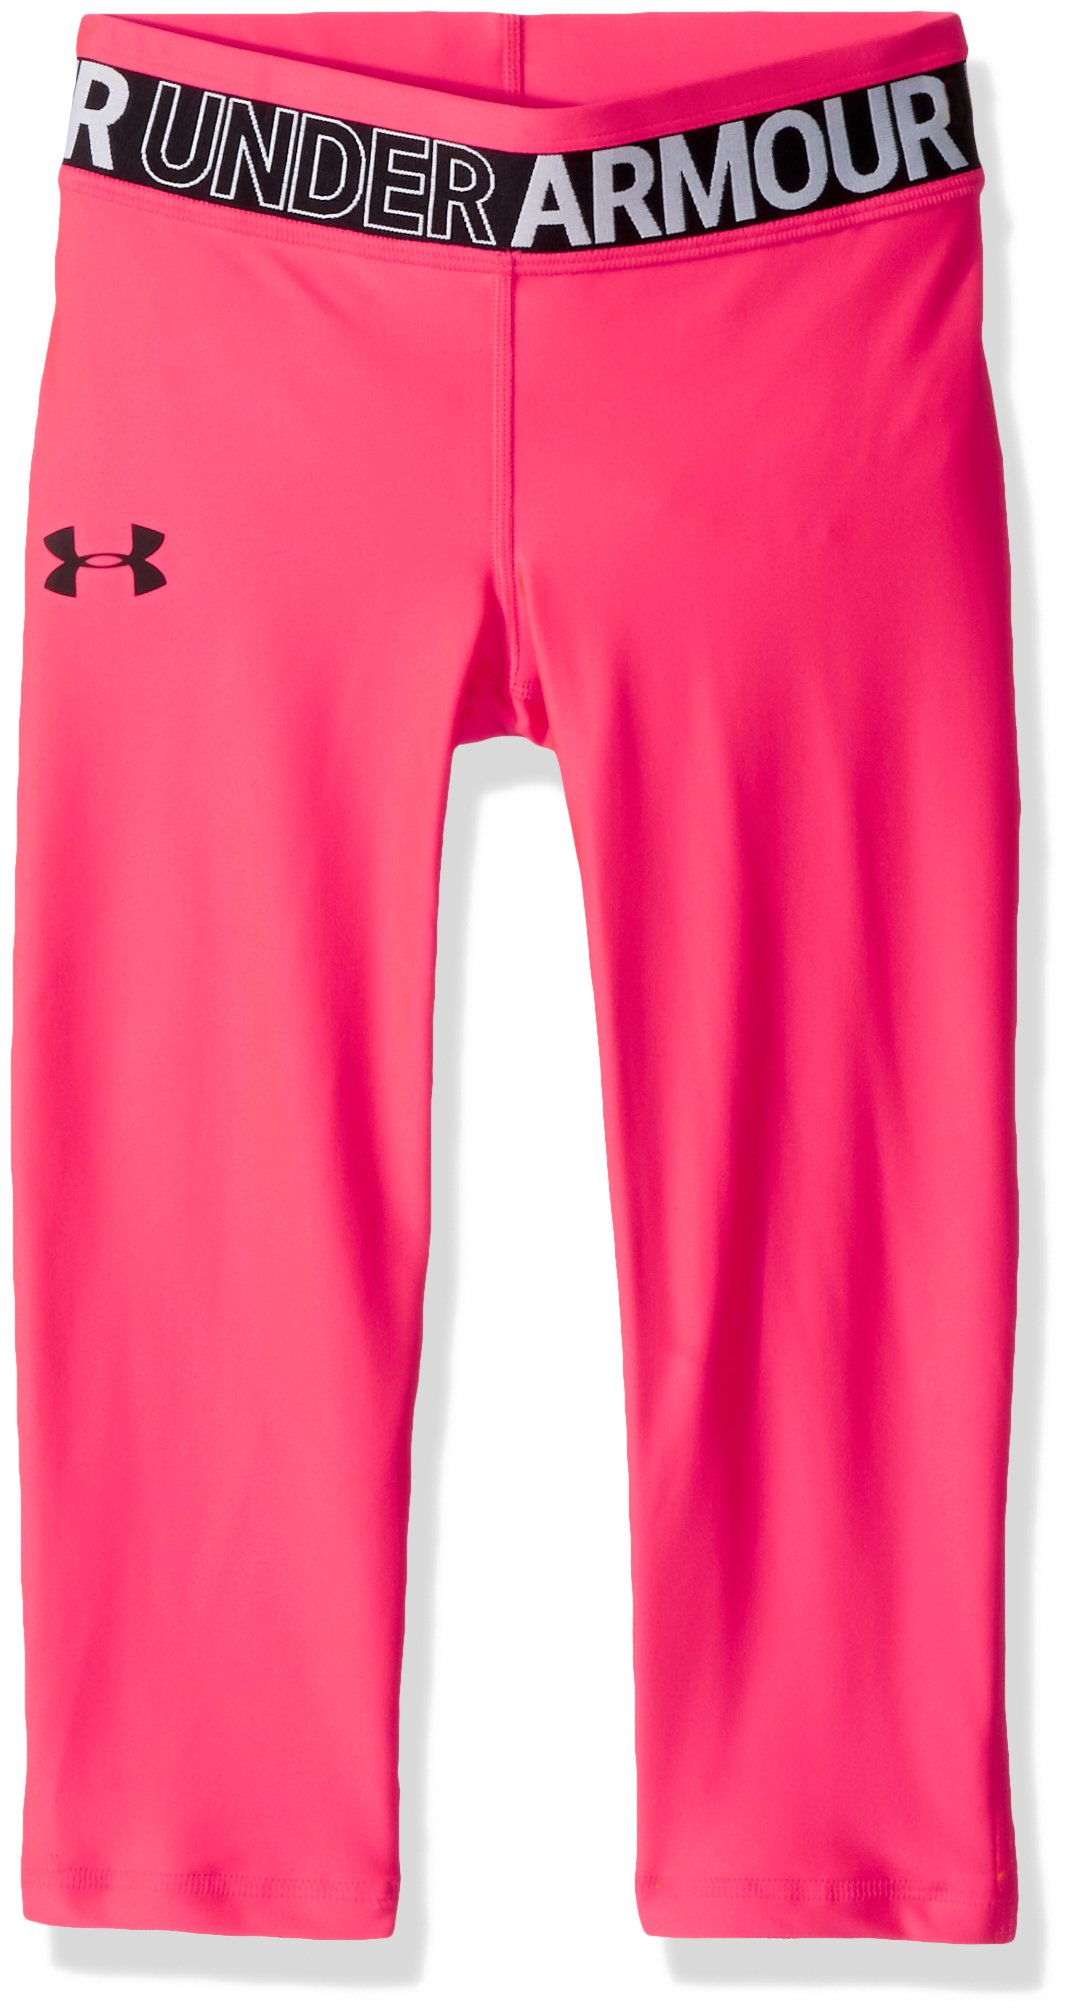 Under Armour Girls' HeatGear Armour Capris, Penta Pink /Black, Youth X-Large by Under Armour